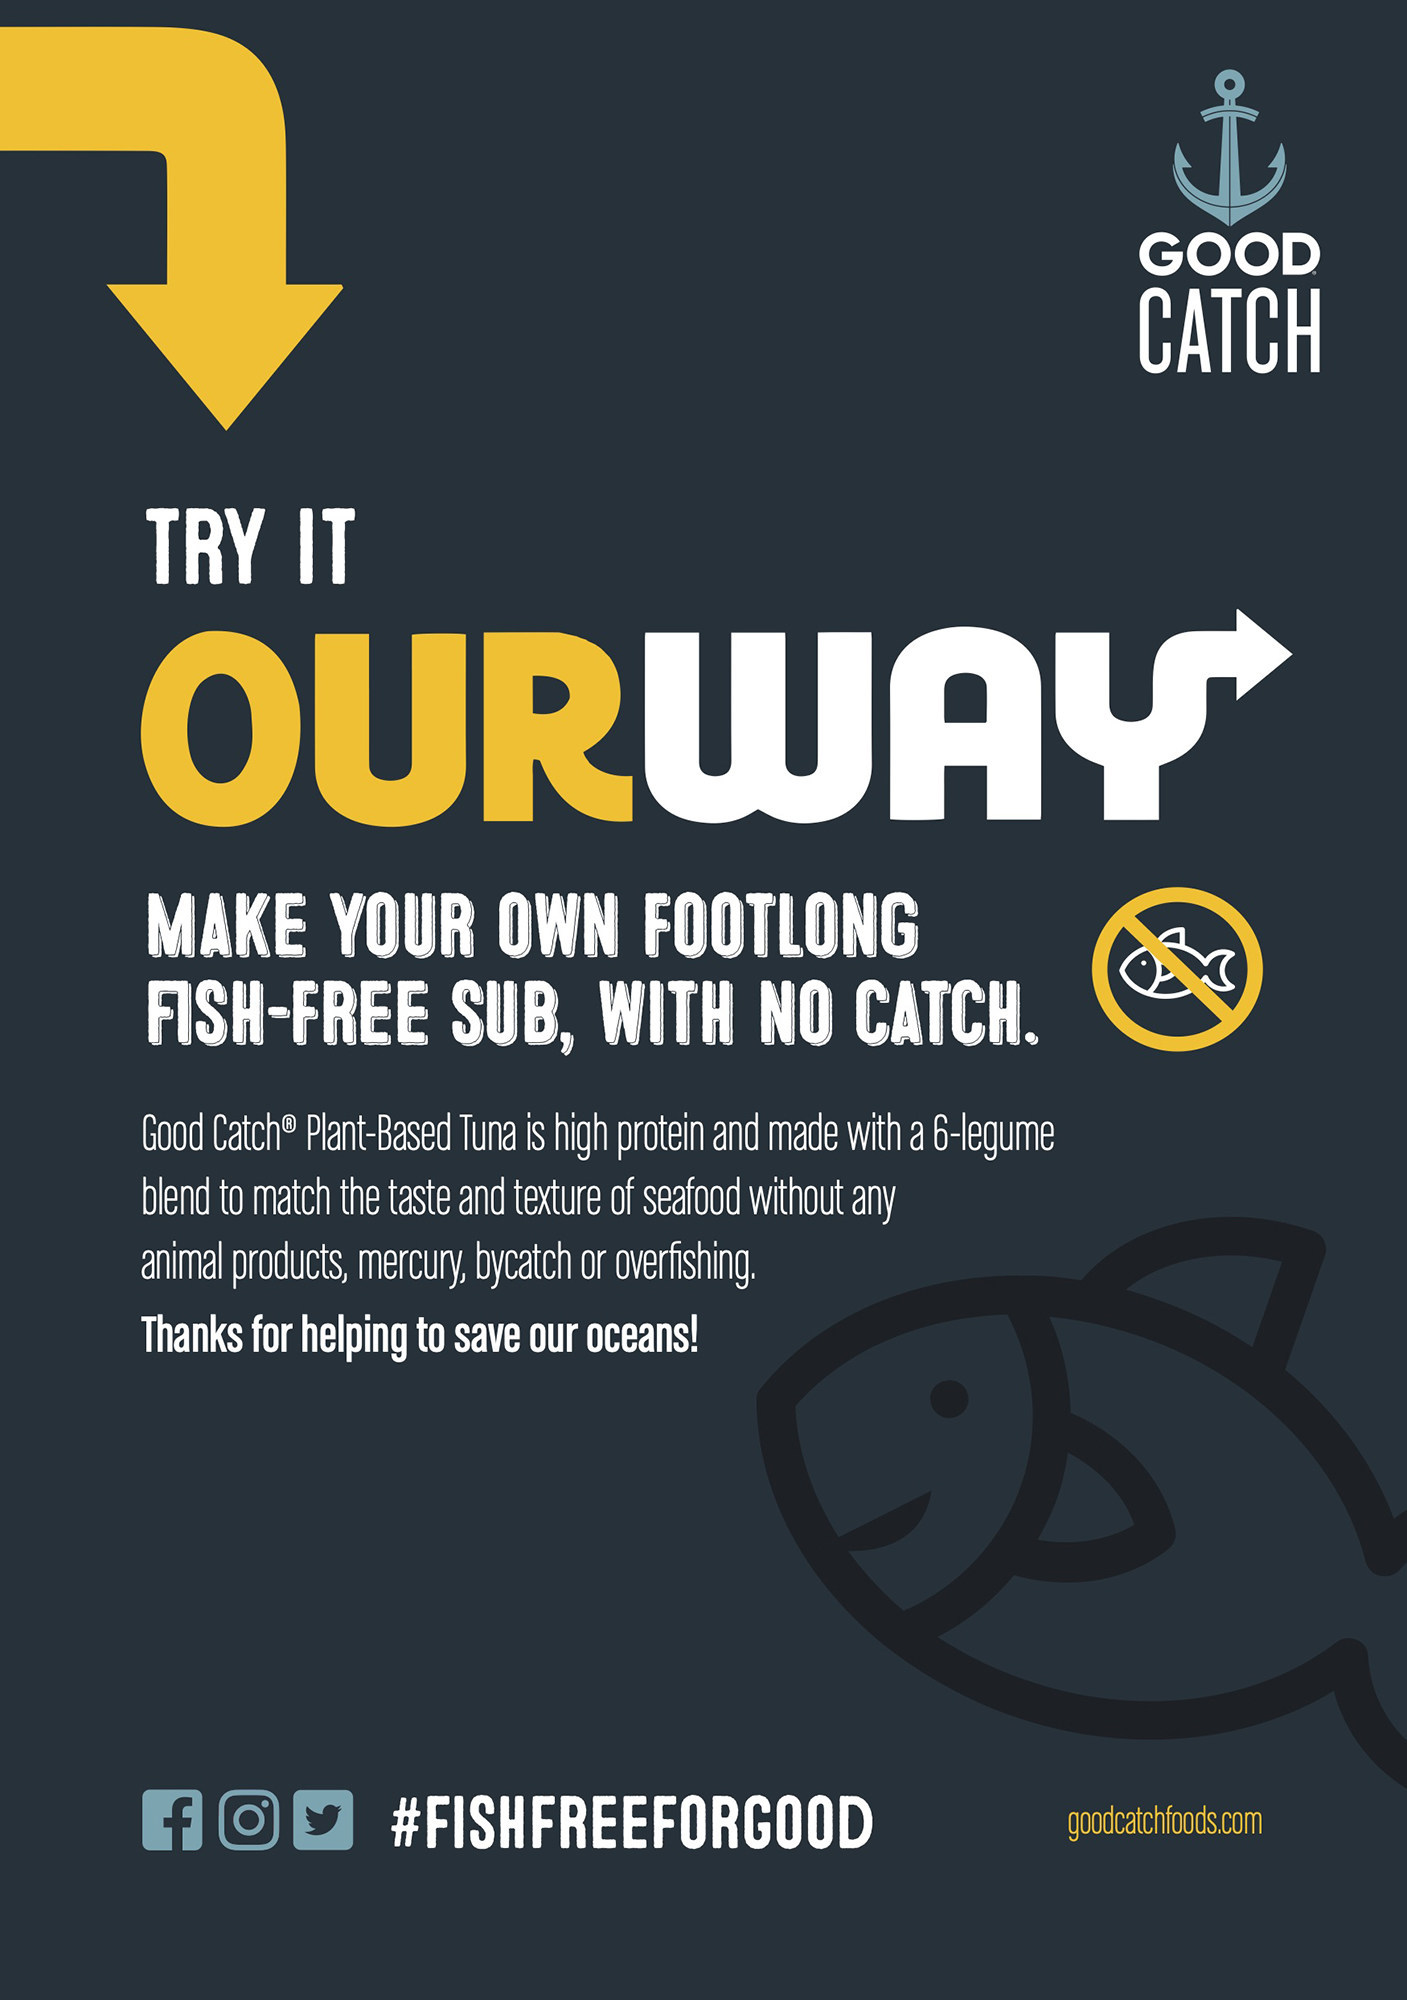 Good Catch Debuts 'OurWay' Food Van Featuring Plant-based Tuna Amid Subway Controversy